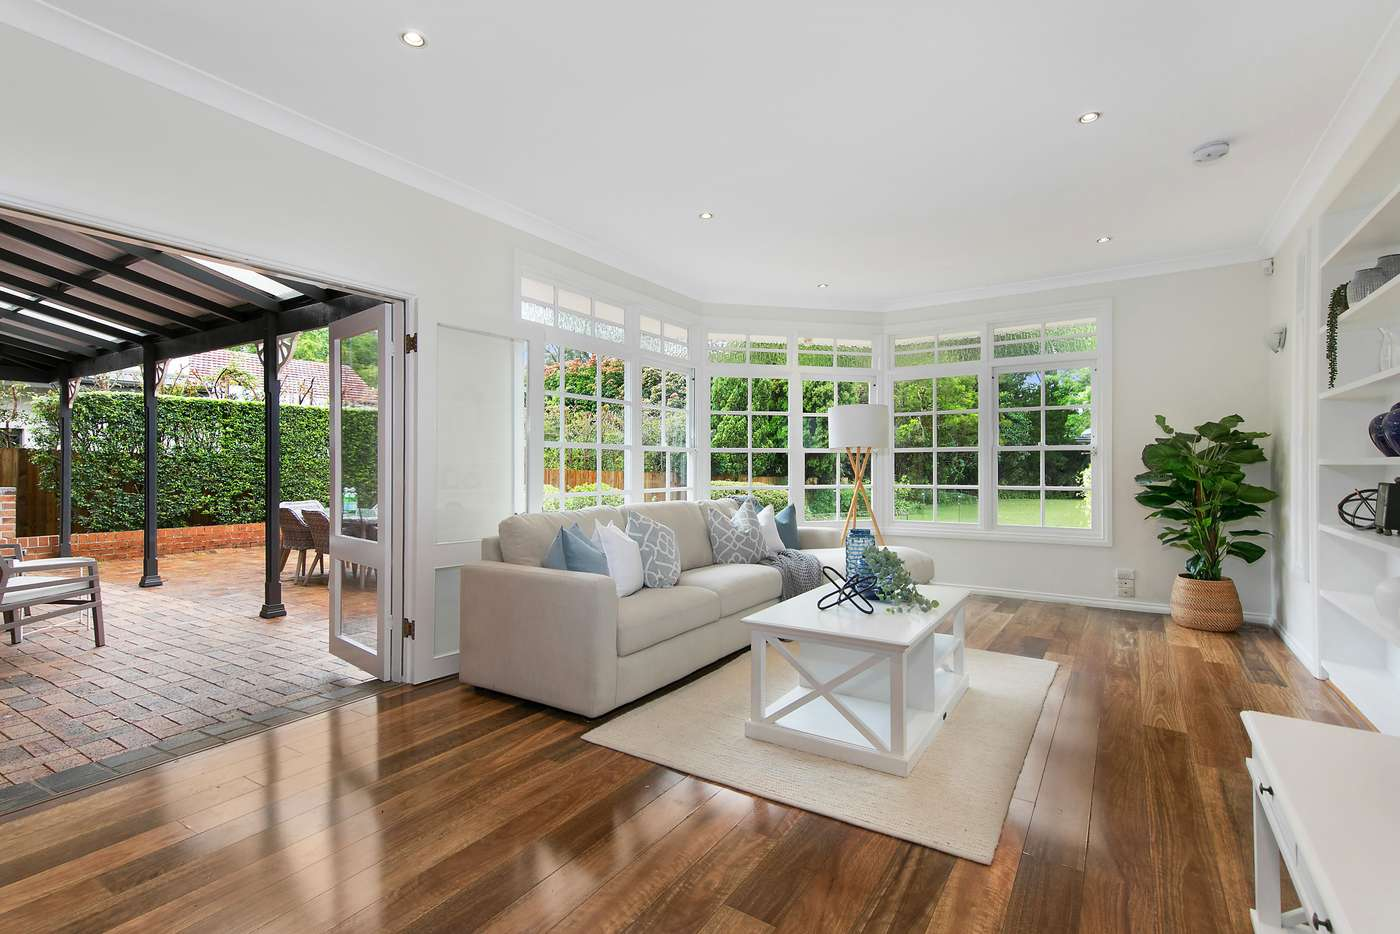 Fifth view of Homely house listing, 8 Rushall Street, Pymble NSW 2073